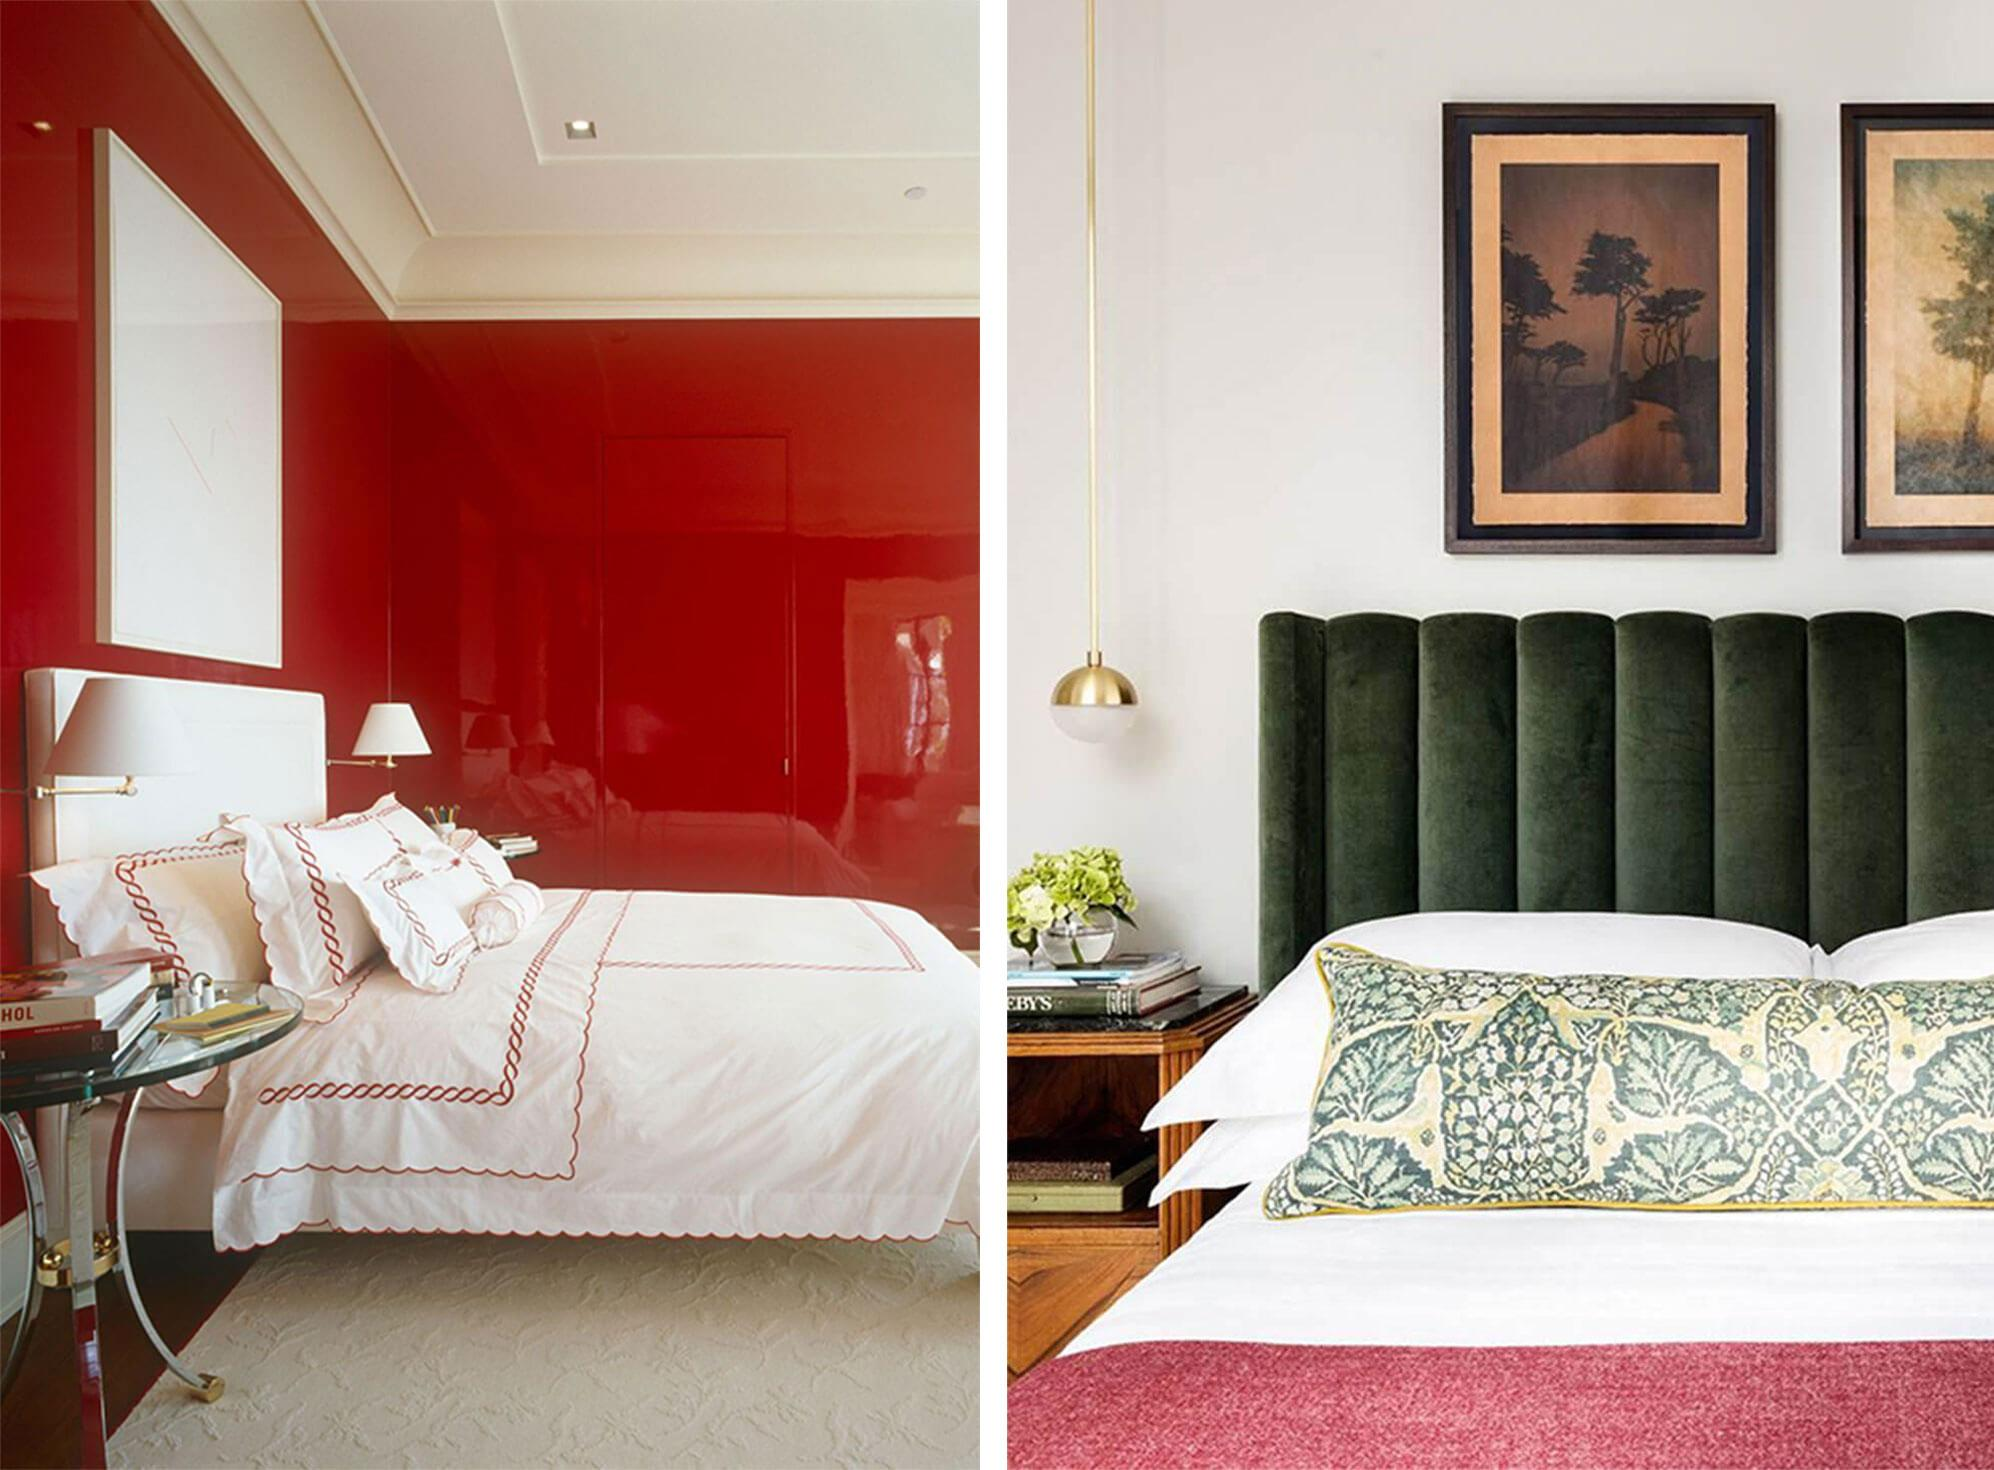 Modern bedroom with glossy red walls, matte white ceiling, and a white bed